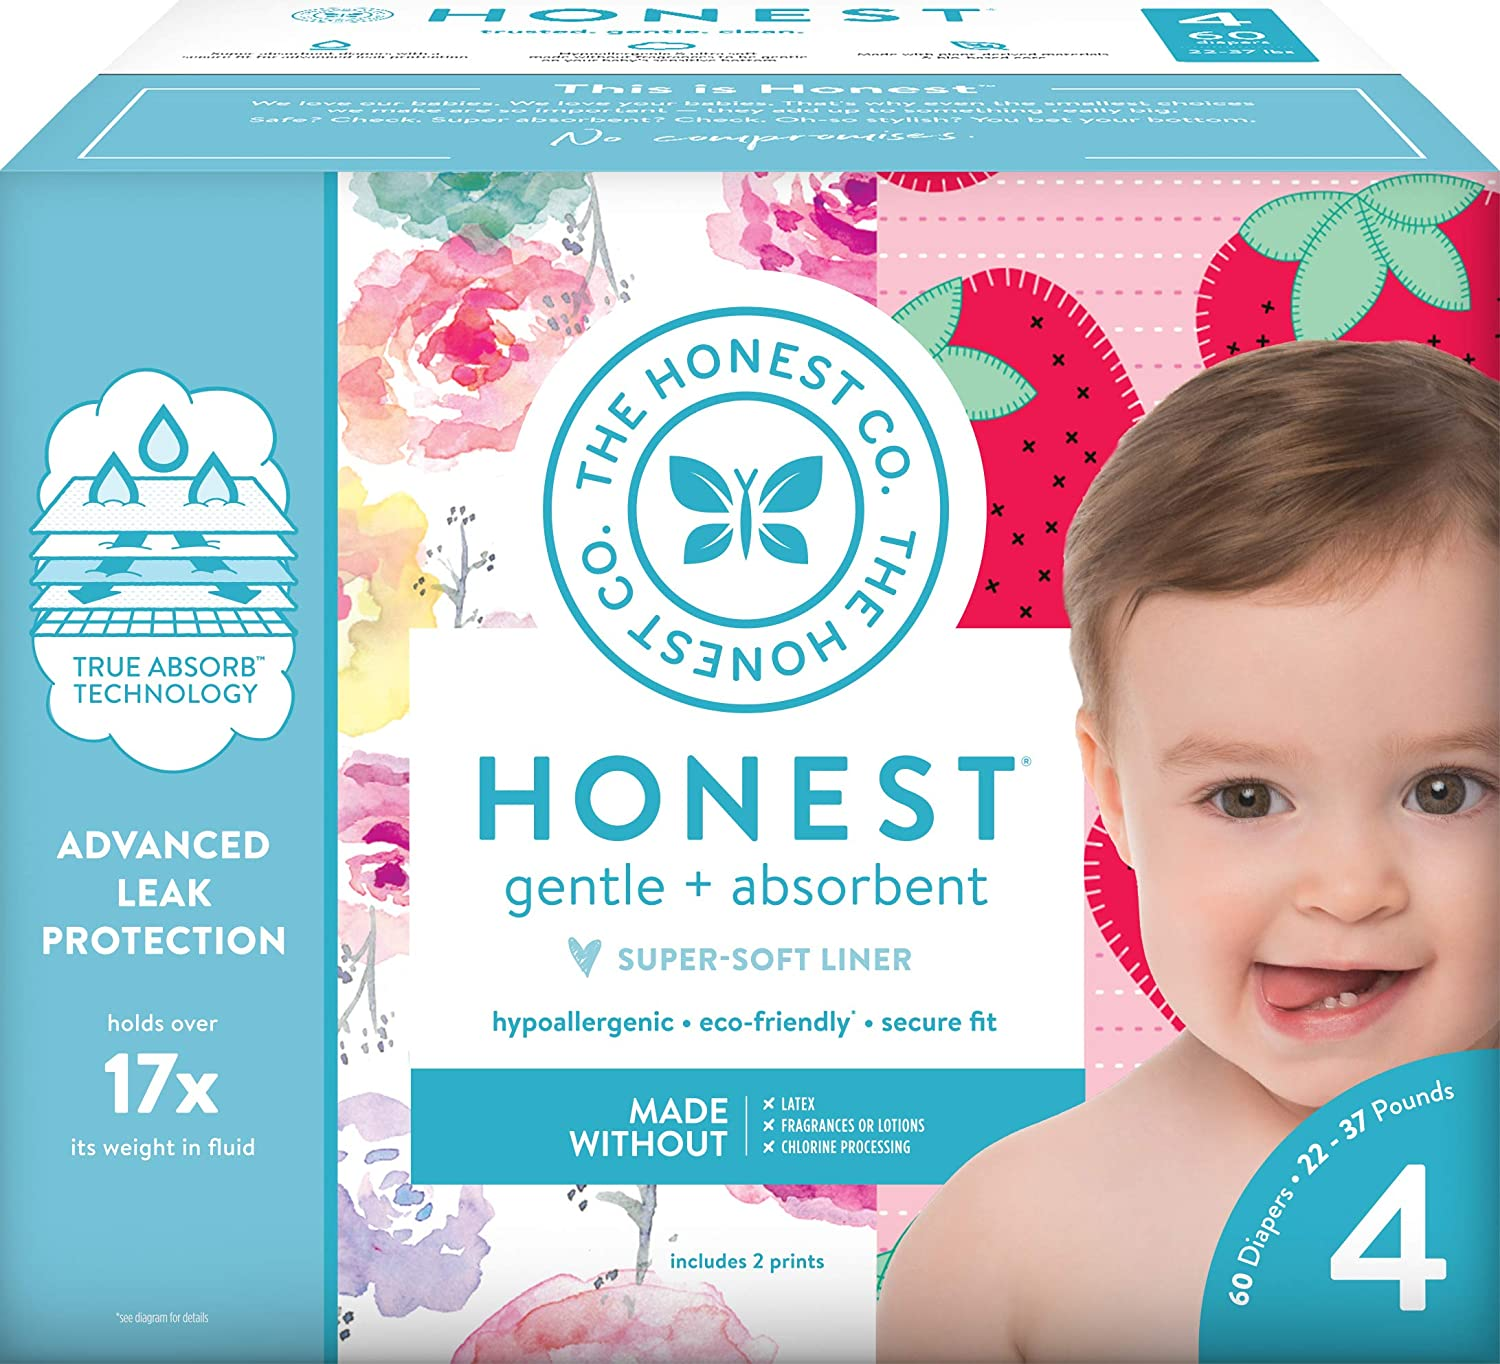 The Honest Company Club Box Diapers TrueAbsorb Technology Pandas Painted Feather